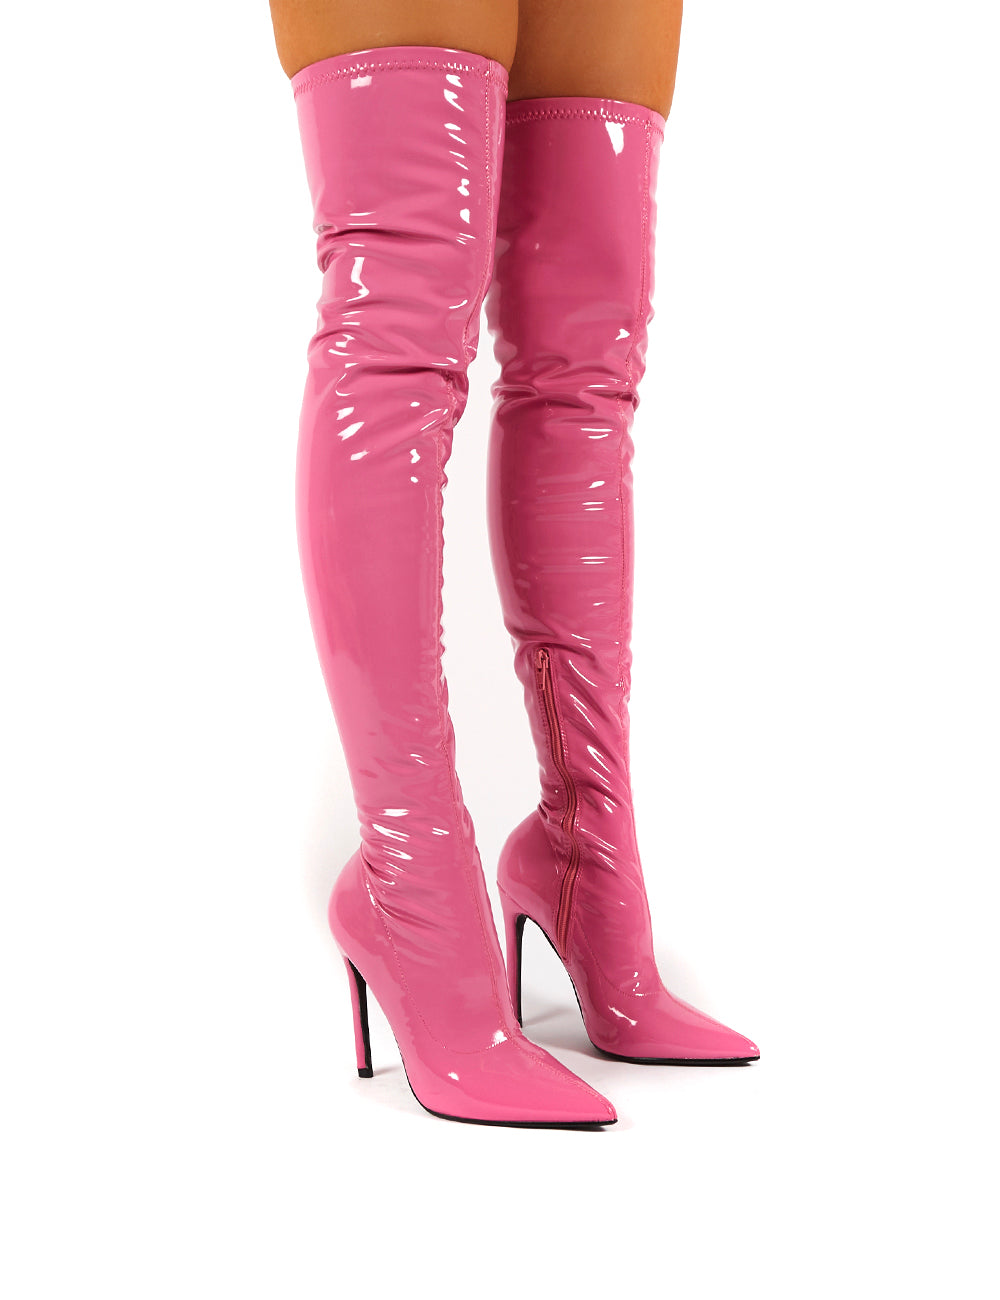 Confidence Pink Patent Heeled Over The